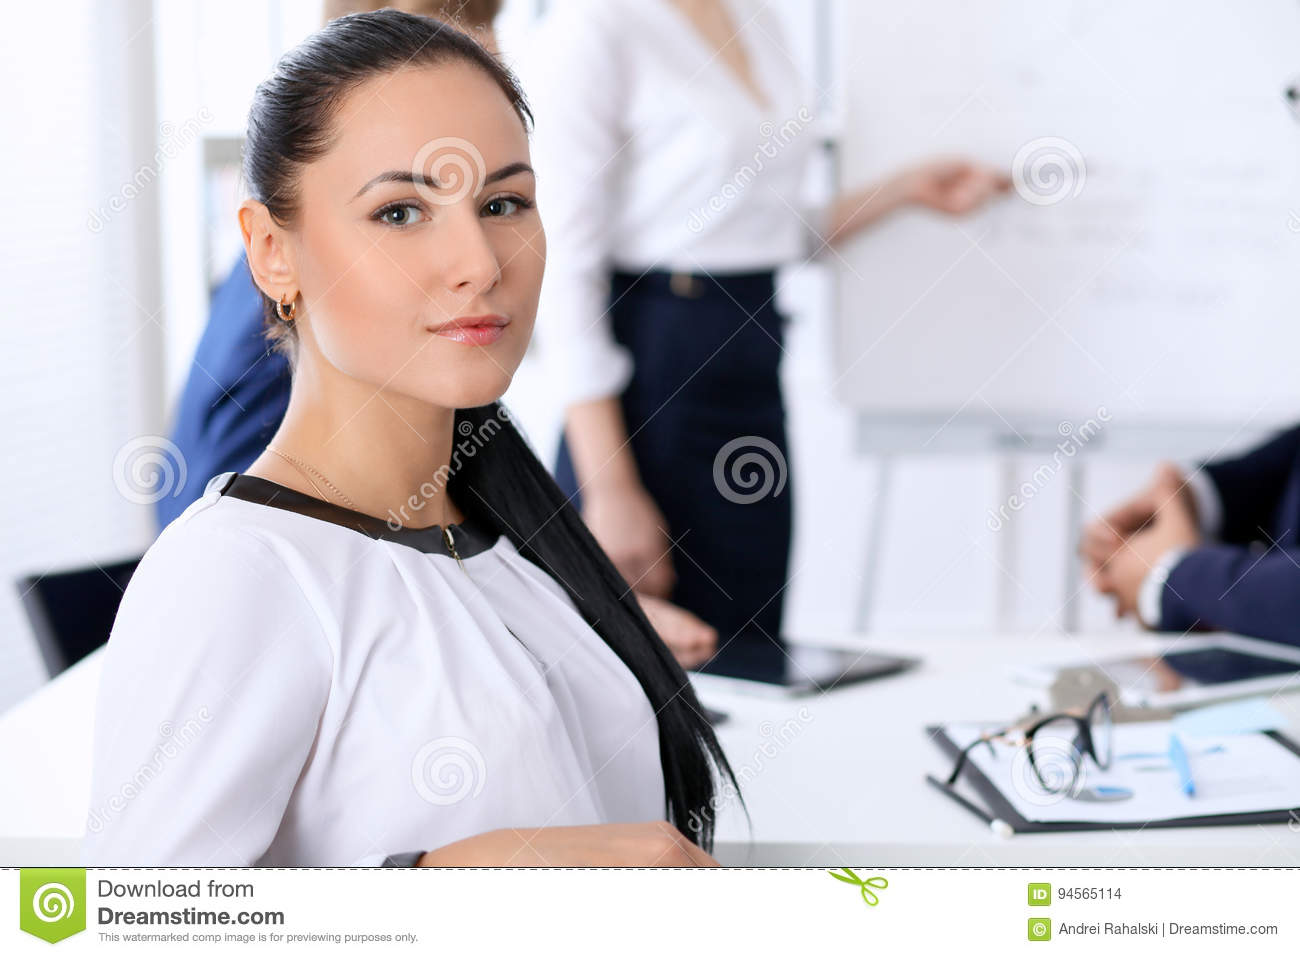 Business people at a meeting in the office. Focus on boss woman